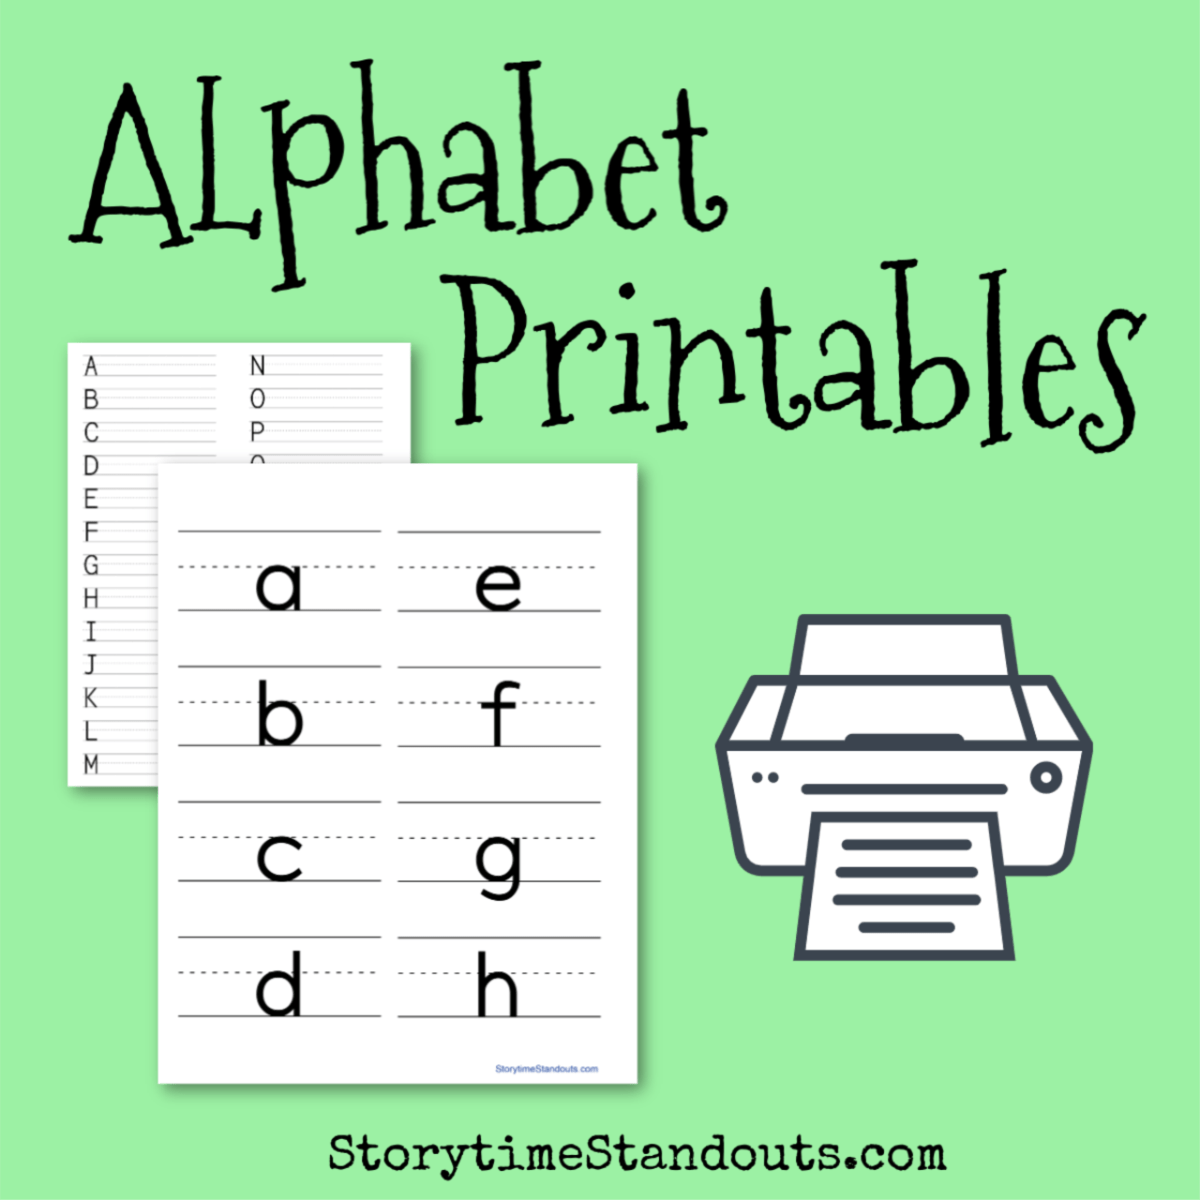 hight resolution of 15 Awesome Printable Alphabets Plus Games for Teaching Letters